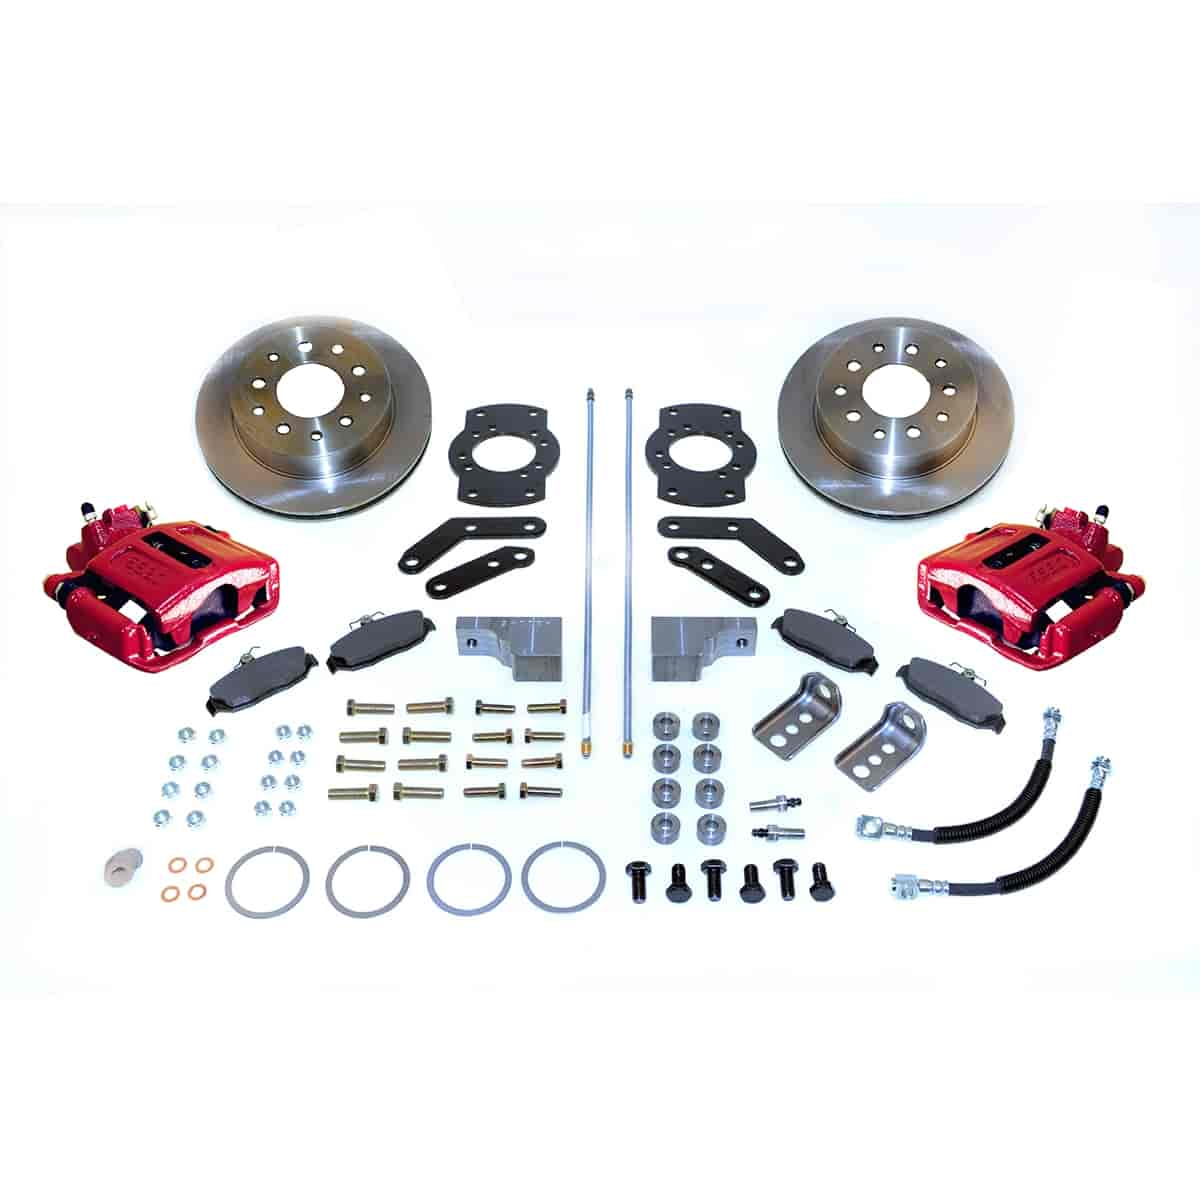 Stainless Steel Brakes A125-3R - Stainless Steel Brakes Single Piston Rear Disc Brake Conversion Kit